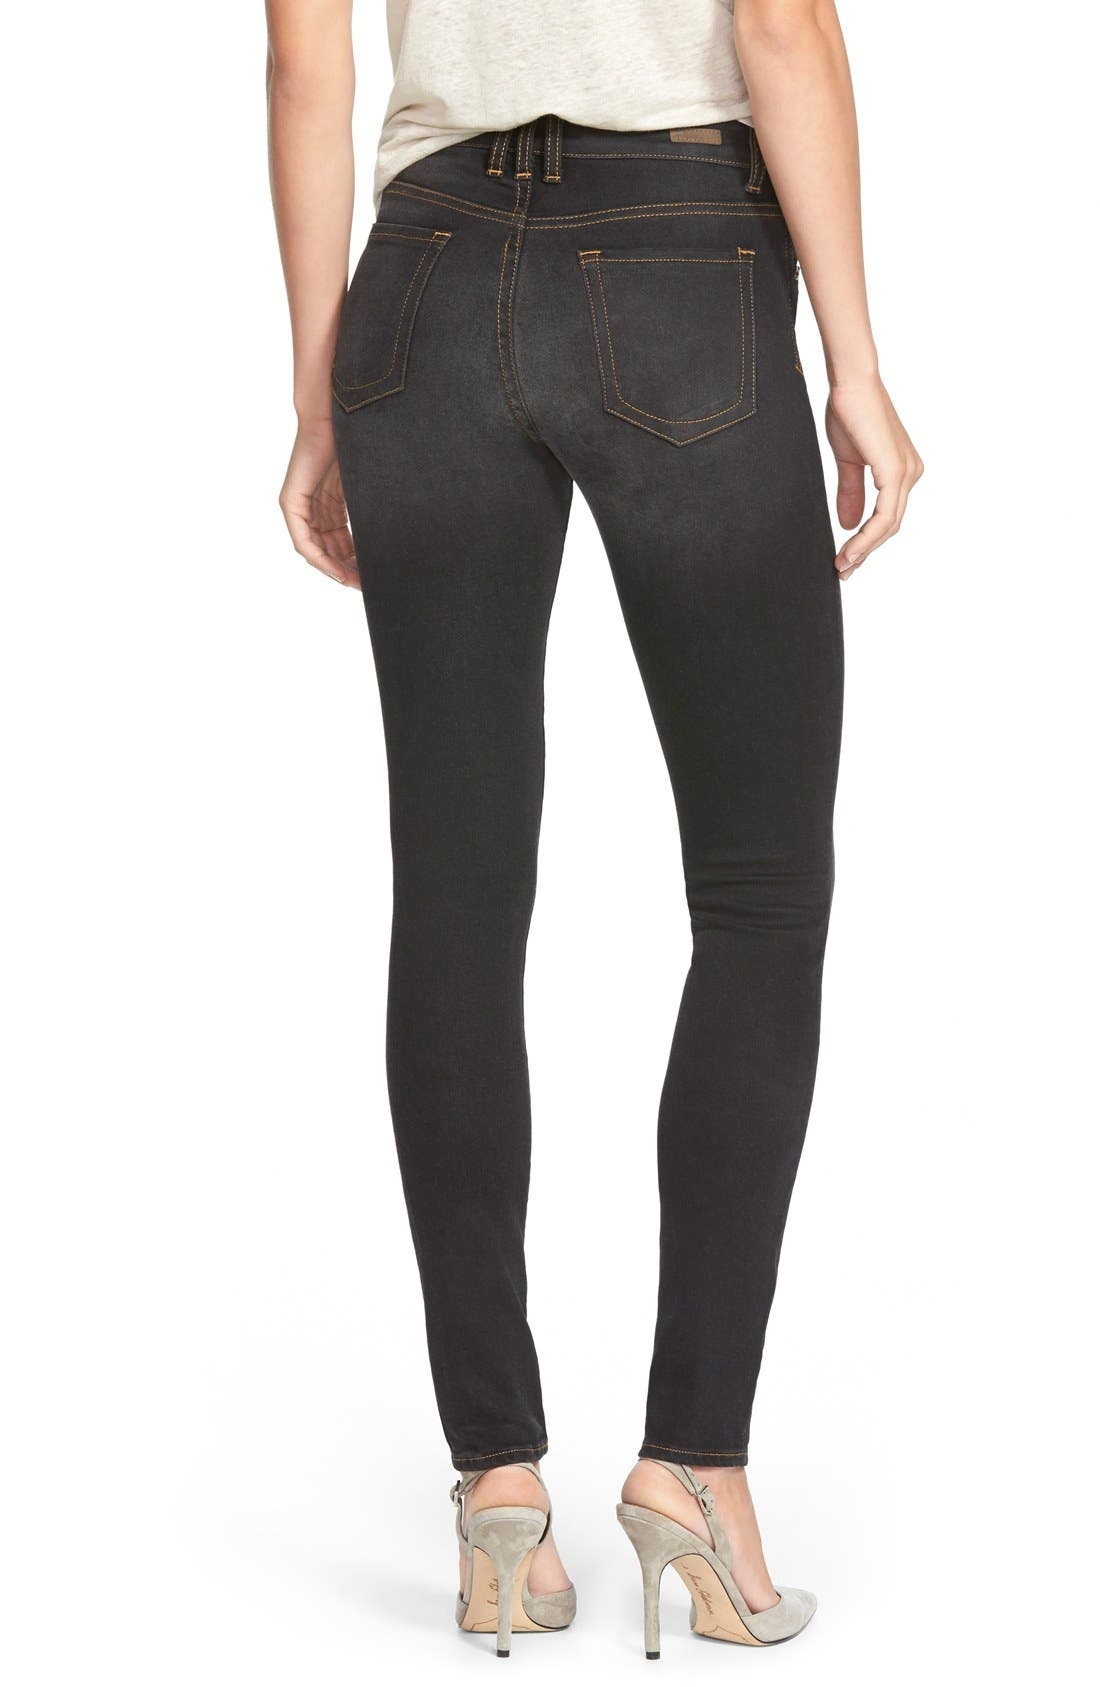 Alternate Image 2  - KUT from the Kloth 'Diana' Stretch Skinny Jeans (Black) (Regular & Petite)